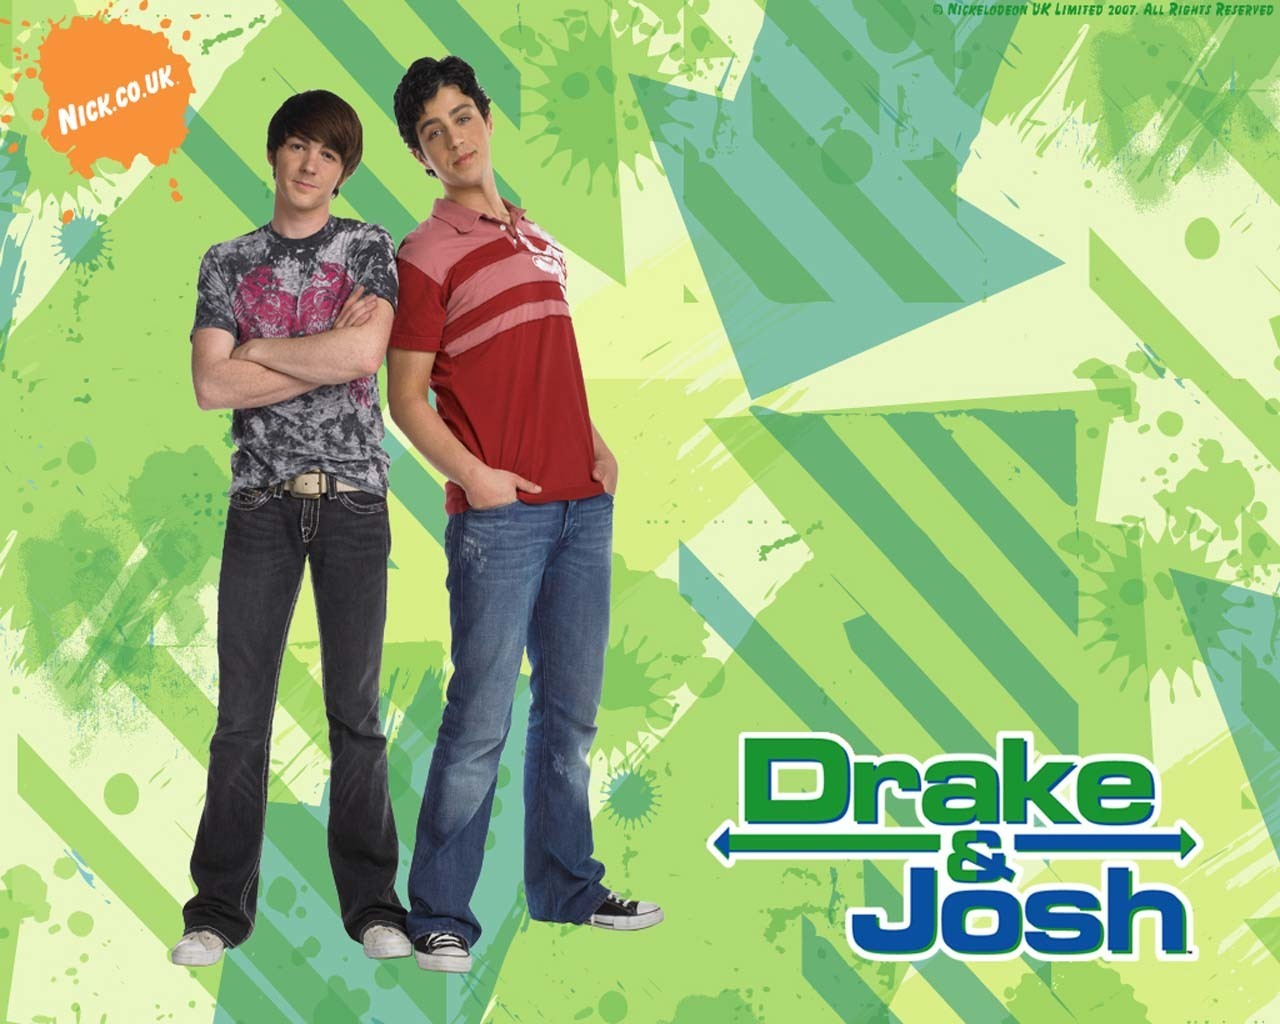 DRAKE&amp;JOSH